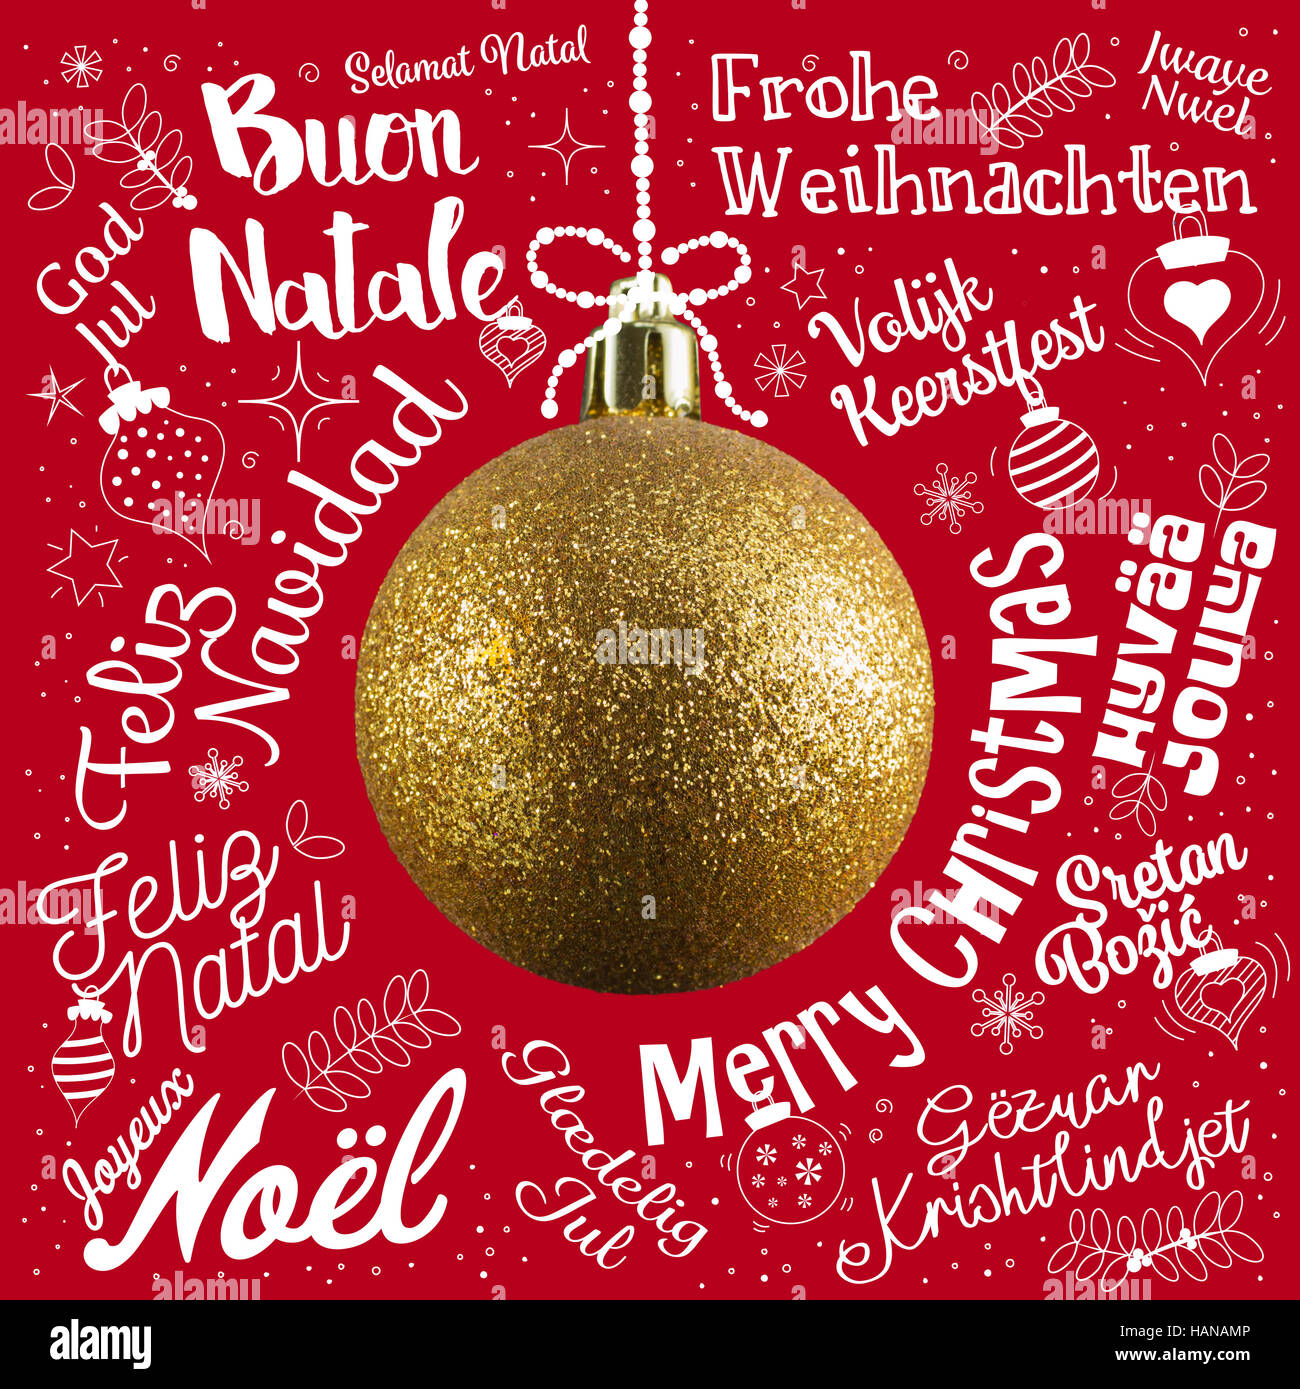 Christmas Greetings In Different Languages Stock Photos Christmas